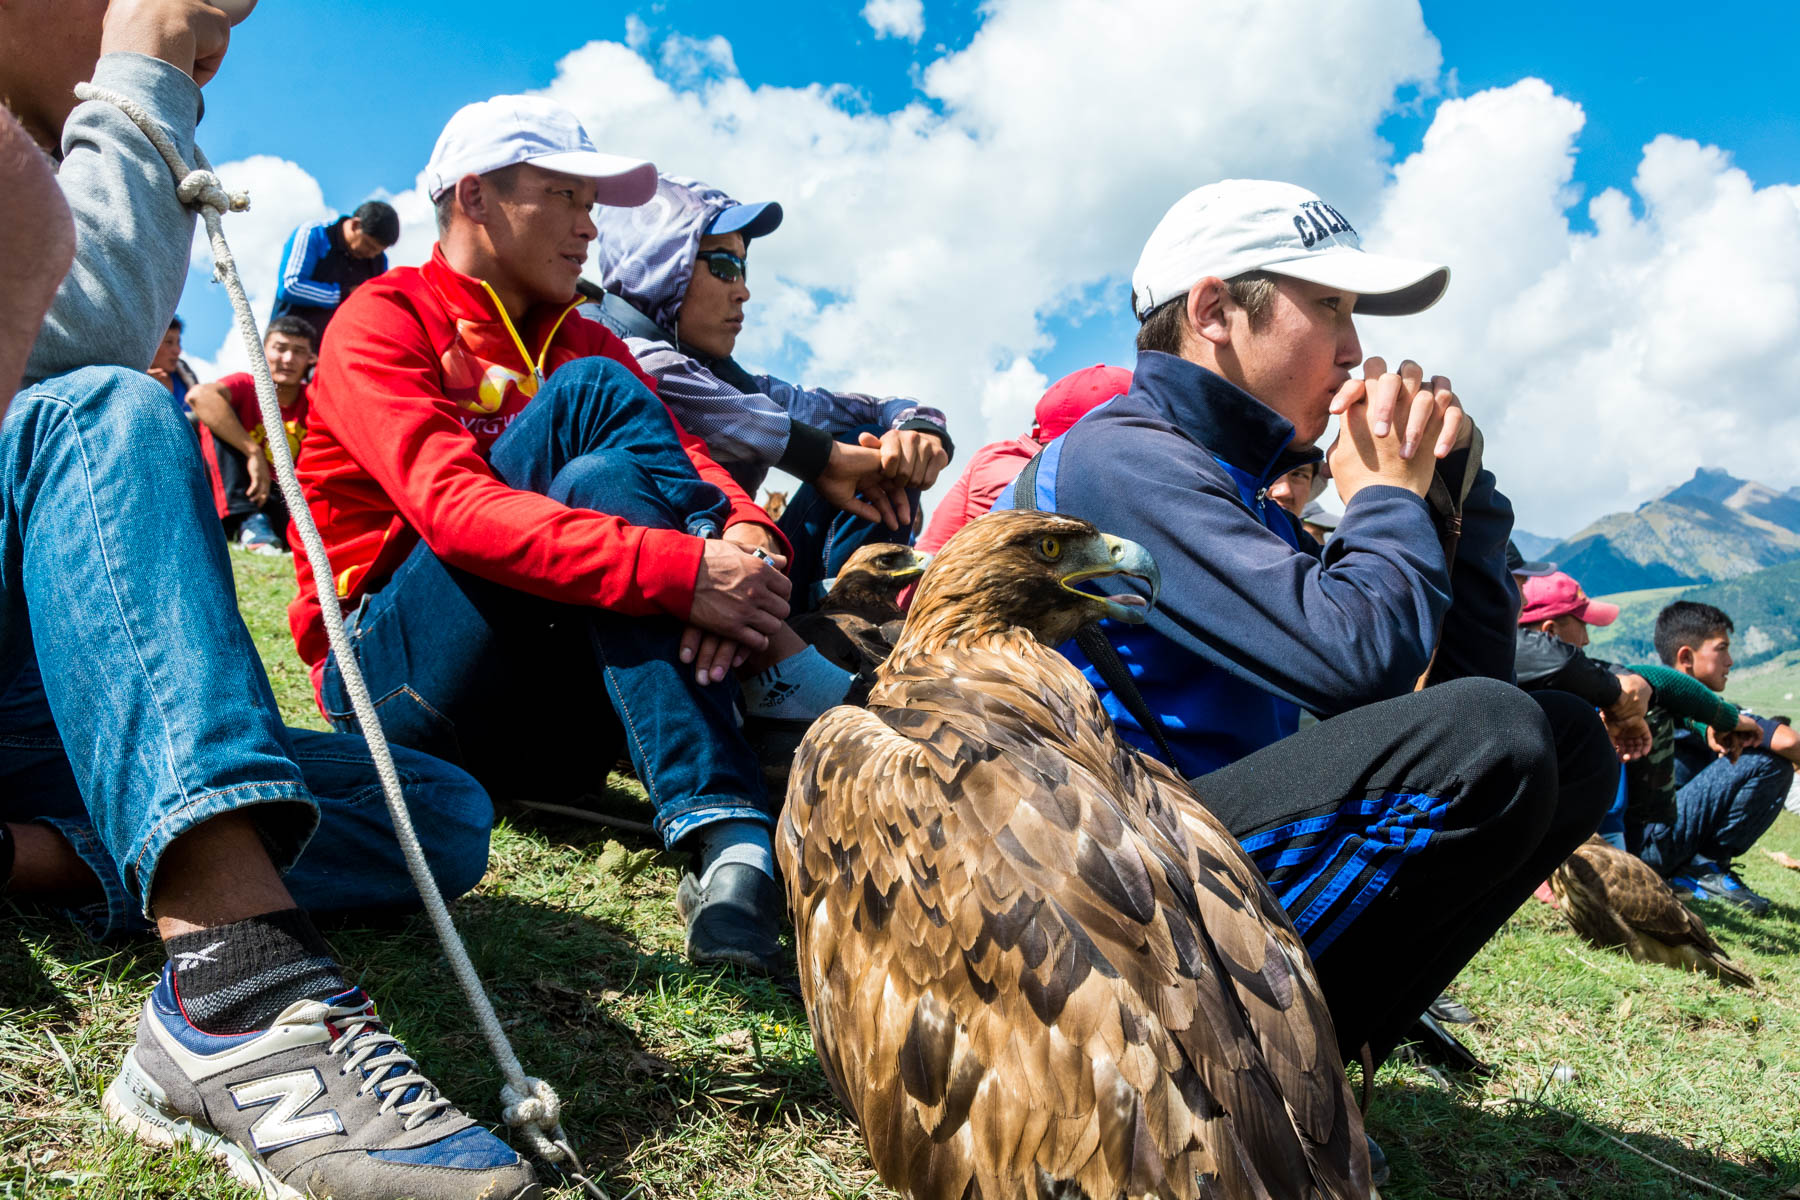 Spectators and eagles at the 2016 World Nomad Games - Are the 2018 World Nomad Games worth it? - Lost With Purpose